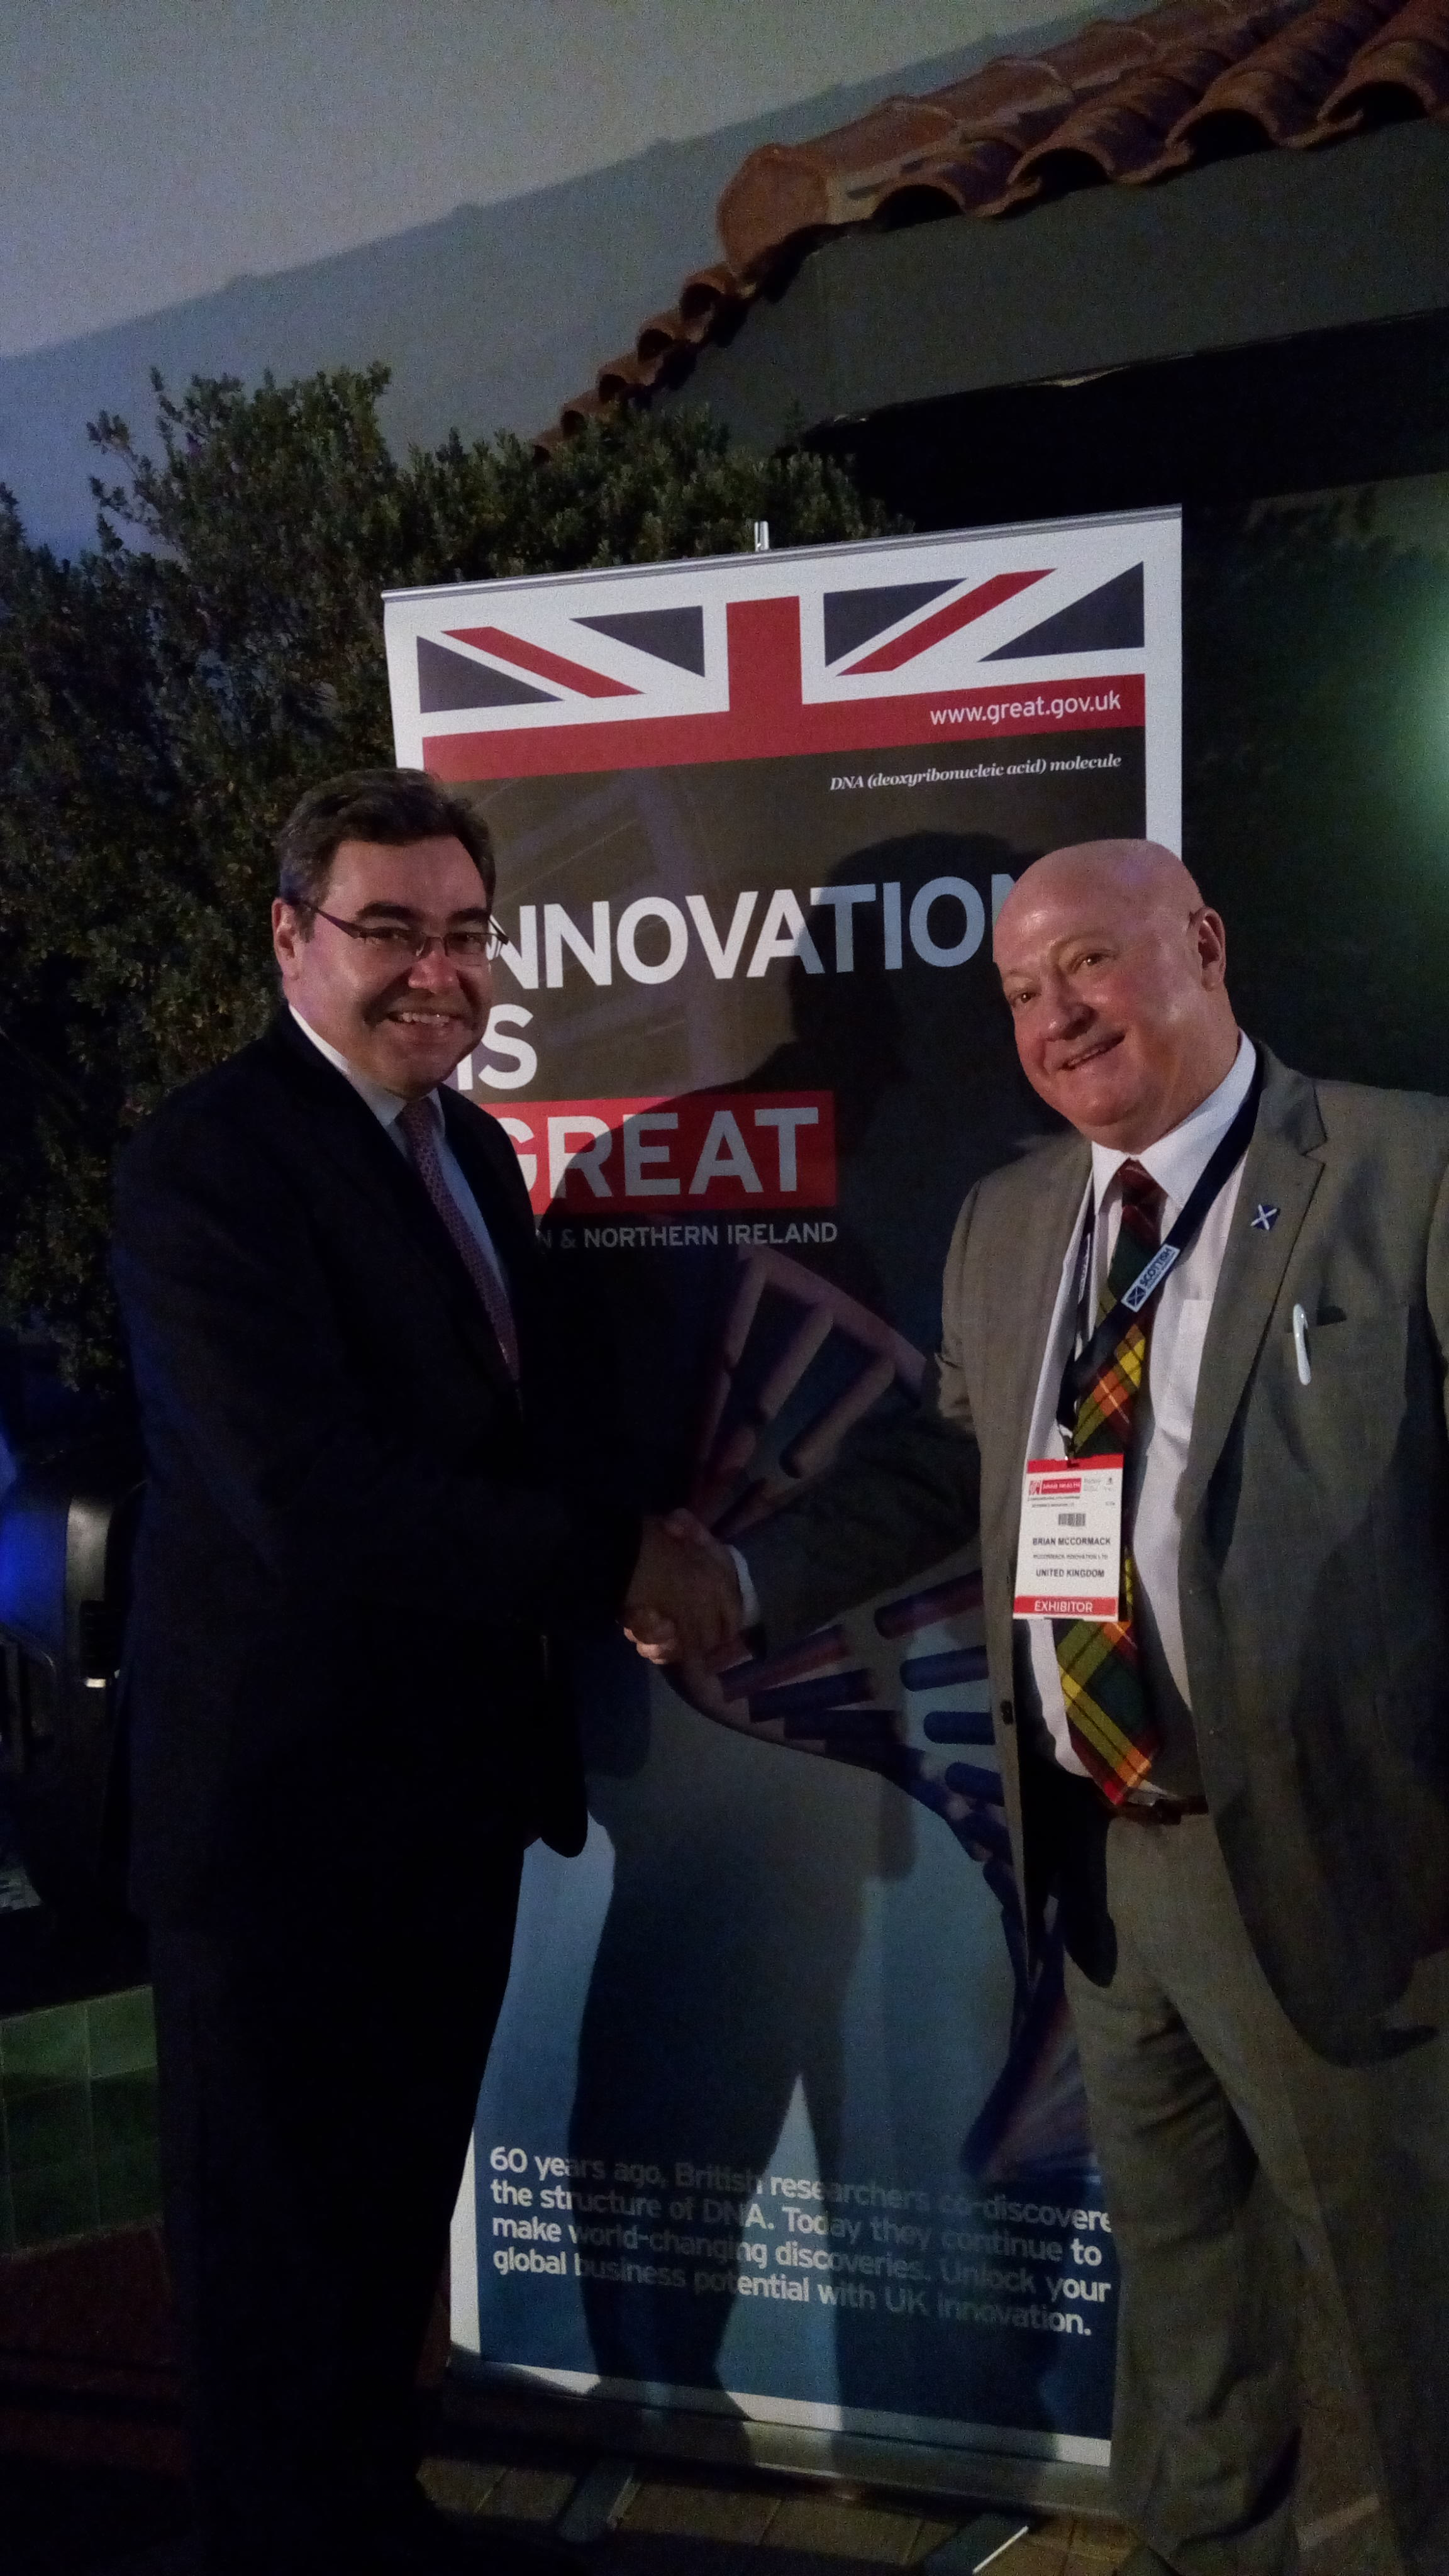 Brian meets Paul Fox, Her Majesty's Consul General to Dubai & Northern Emirates